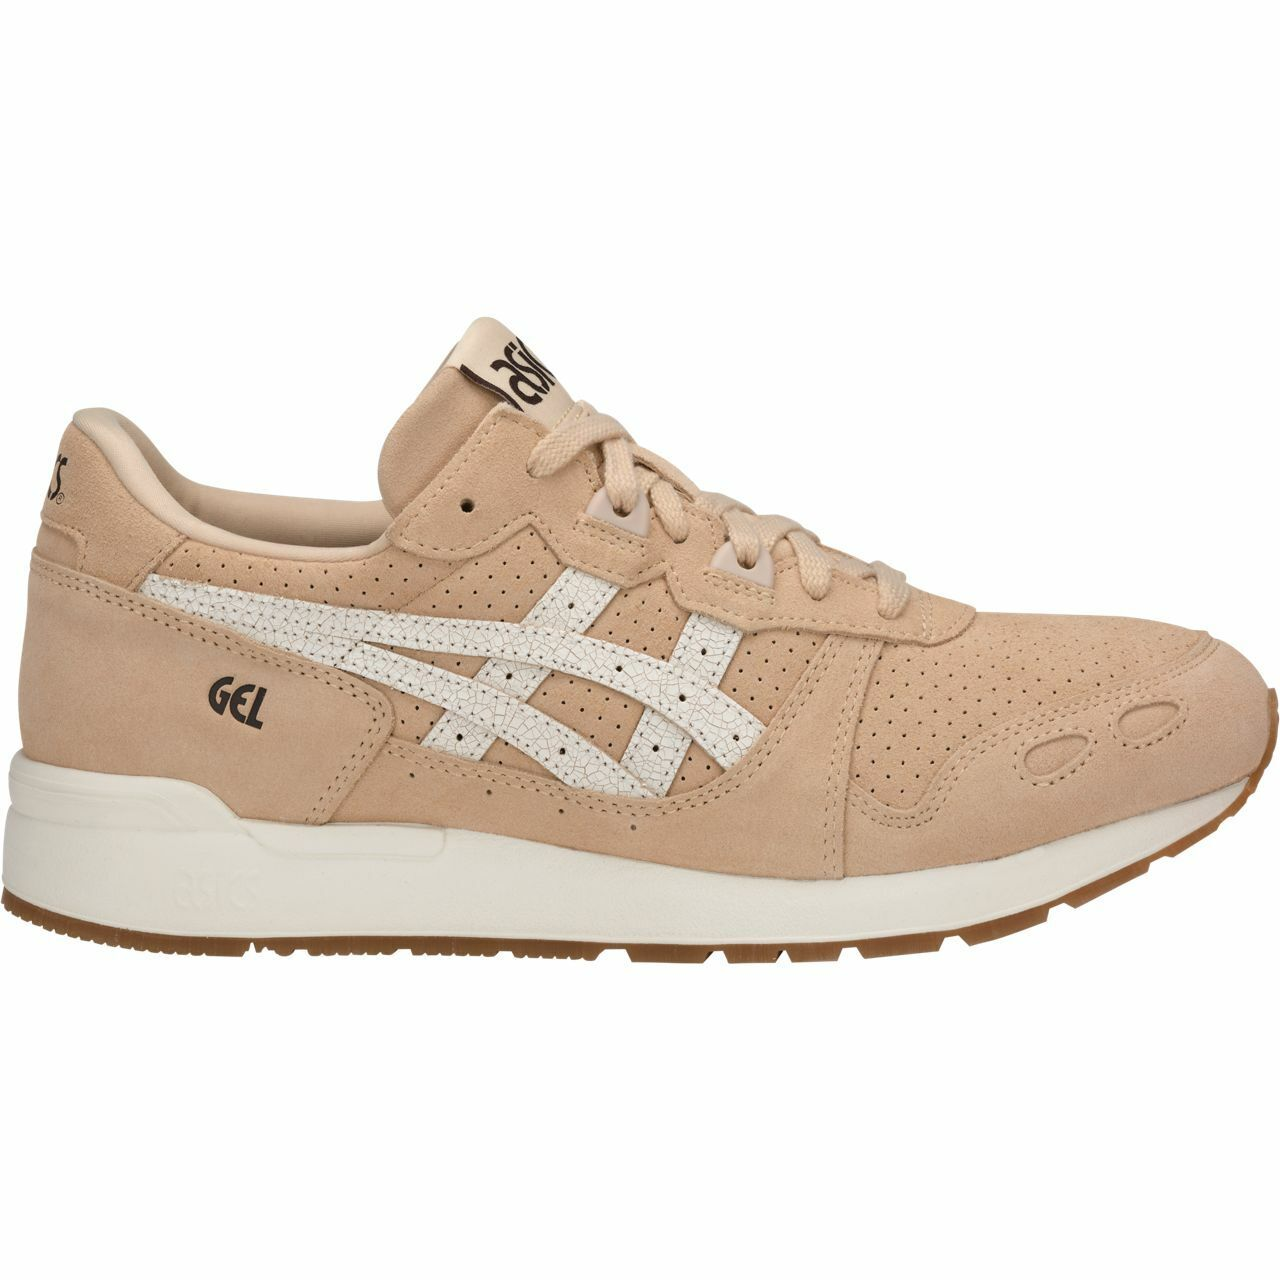 Asics H8B3L 0500 GEL-Lyte Marzipan Cream Men's Sneakers